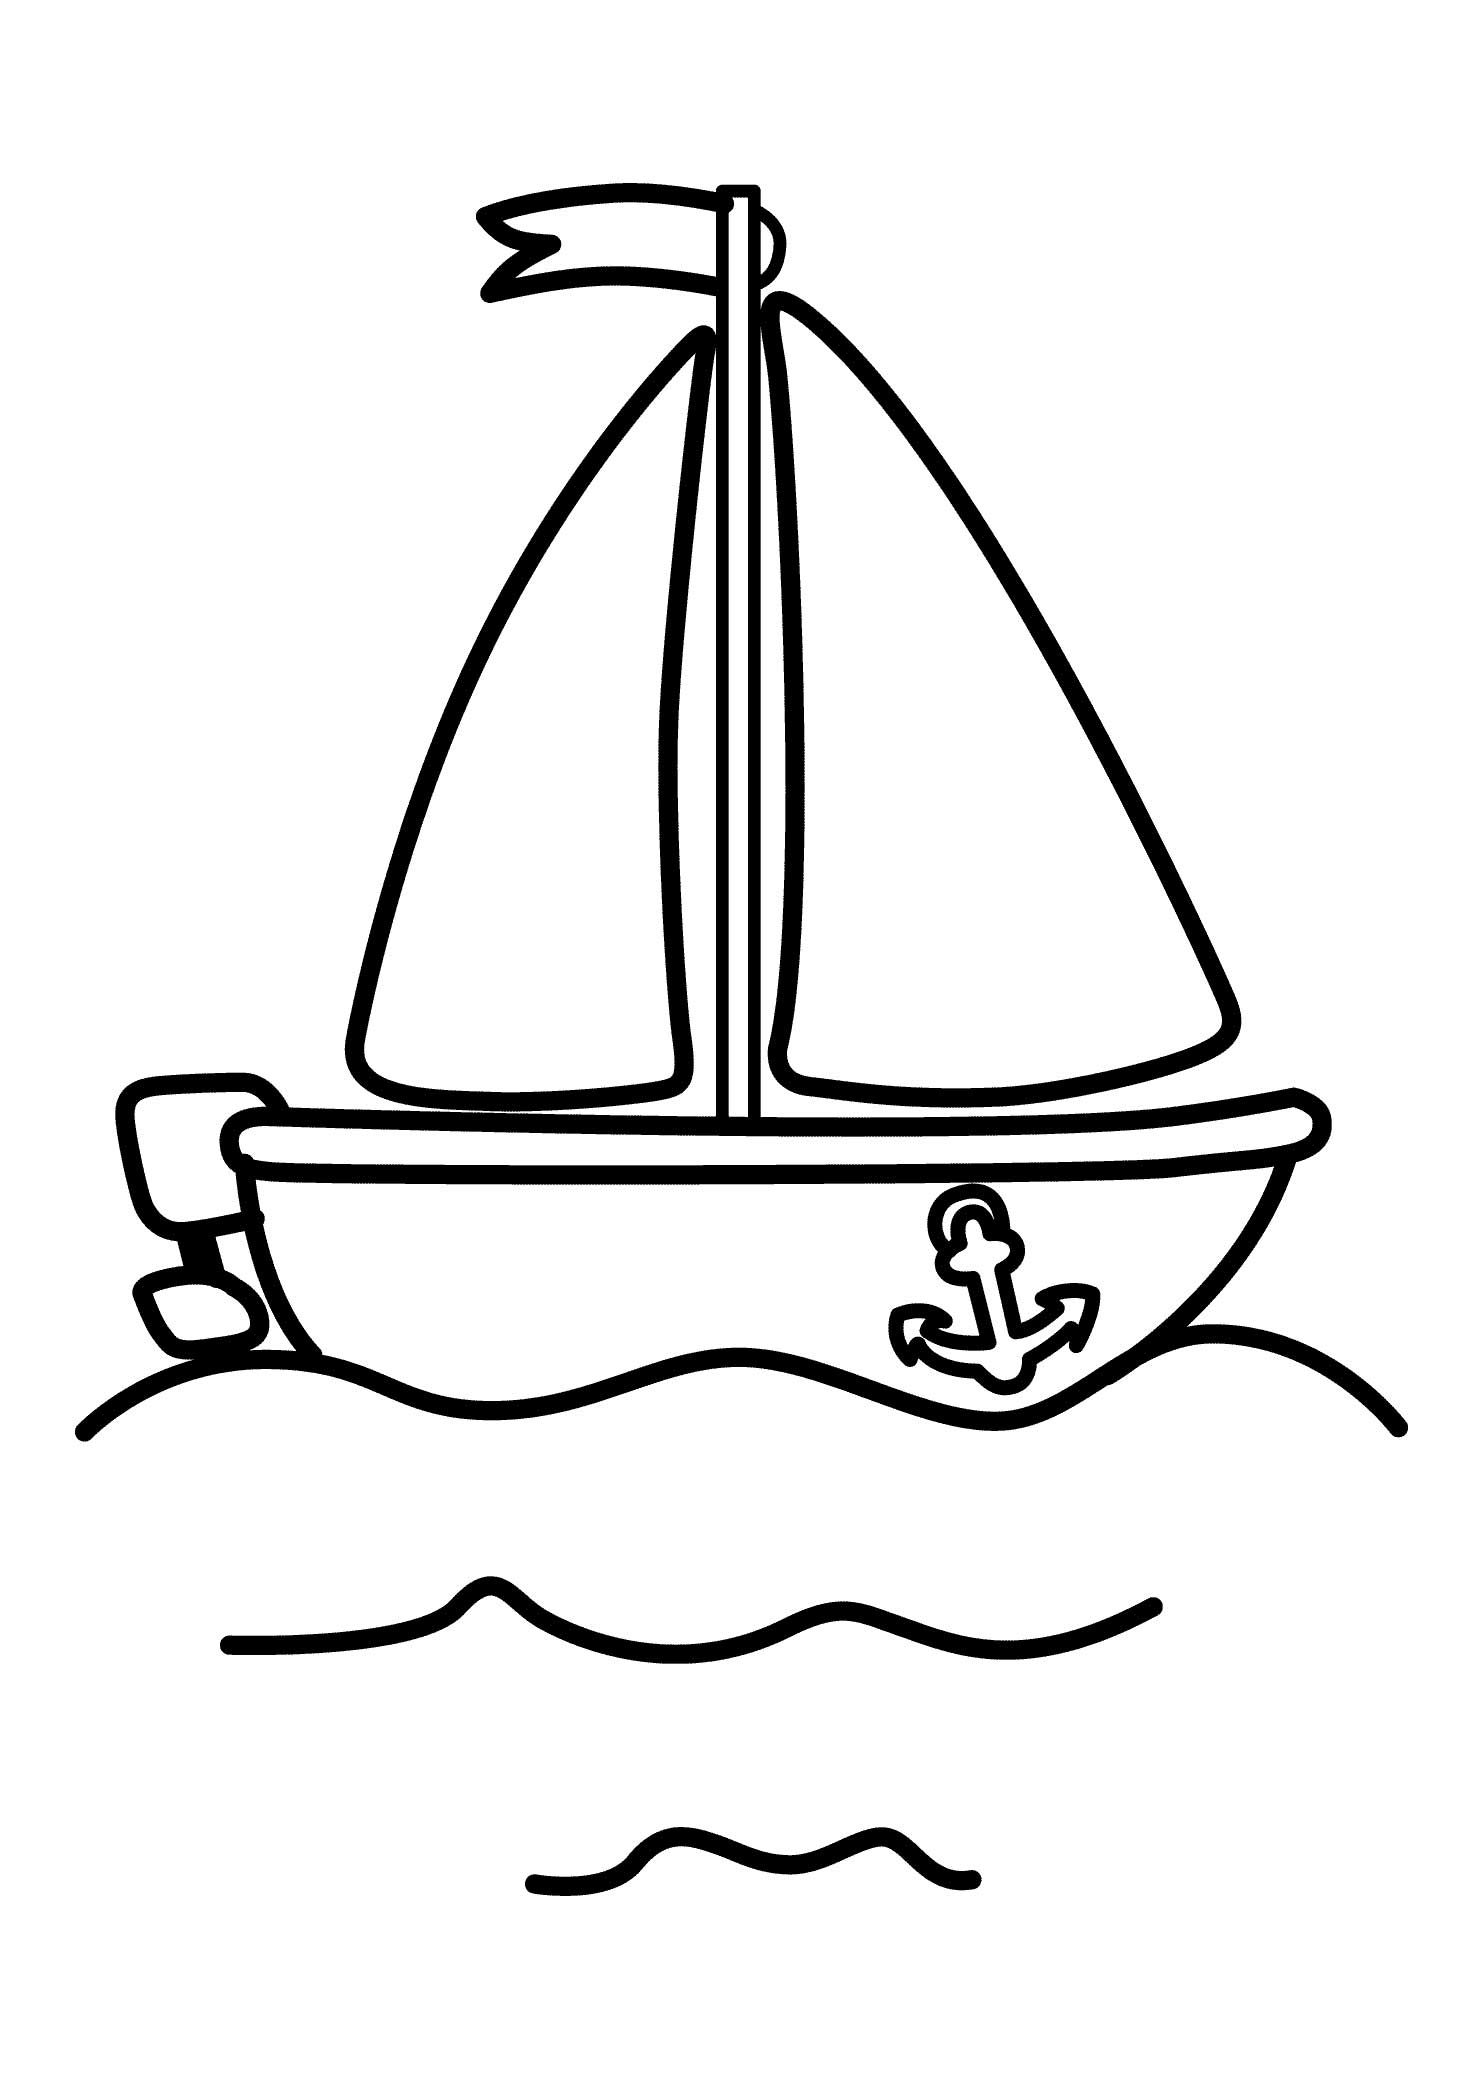 Pinshreya Thakur On Free Coloring Pages | Pinterest | Coloring - Free Printable Boat Pictures